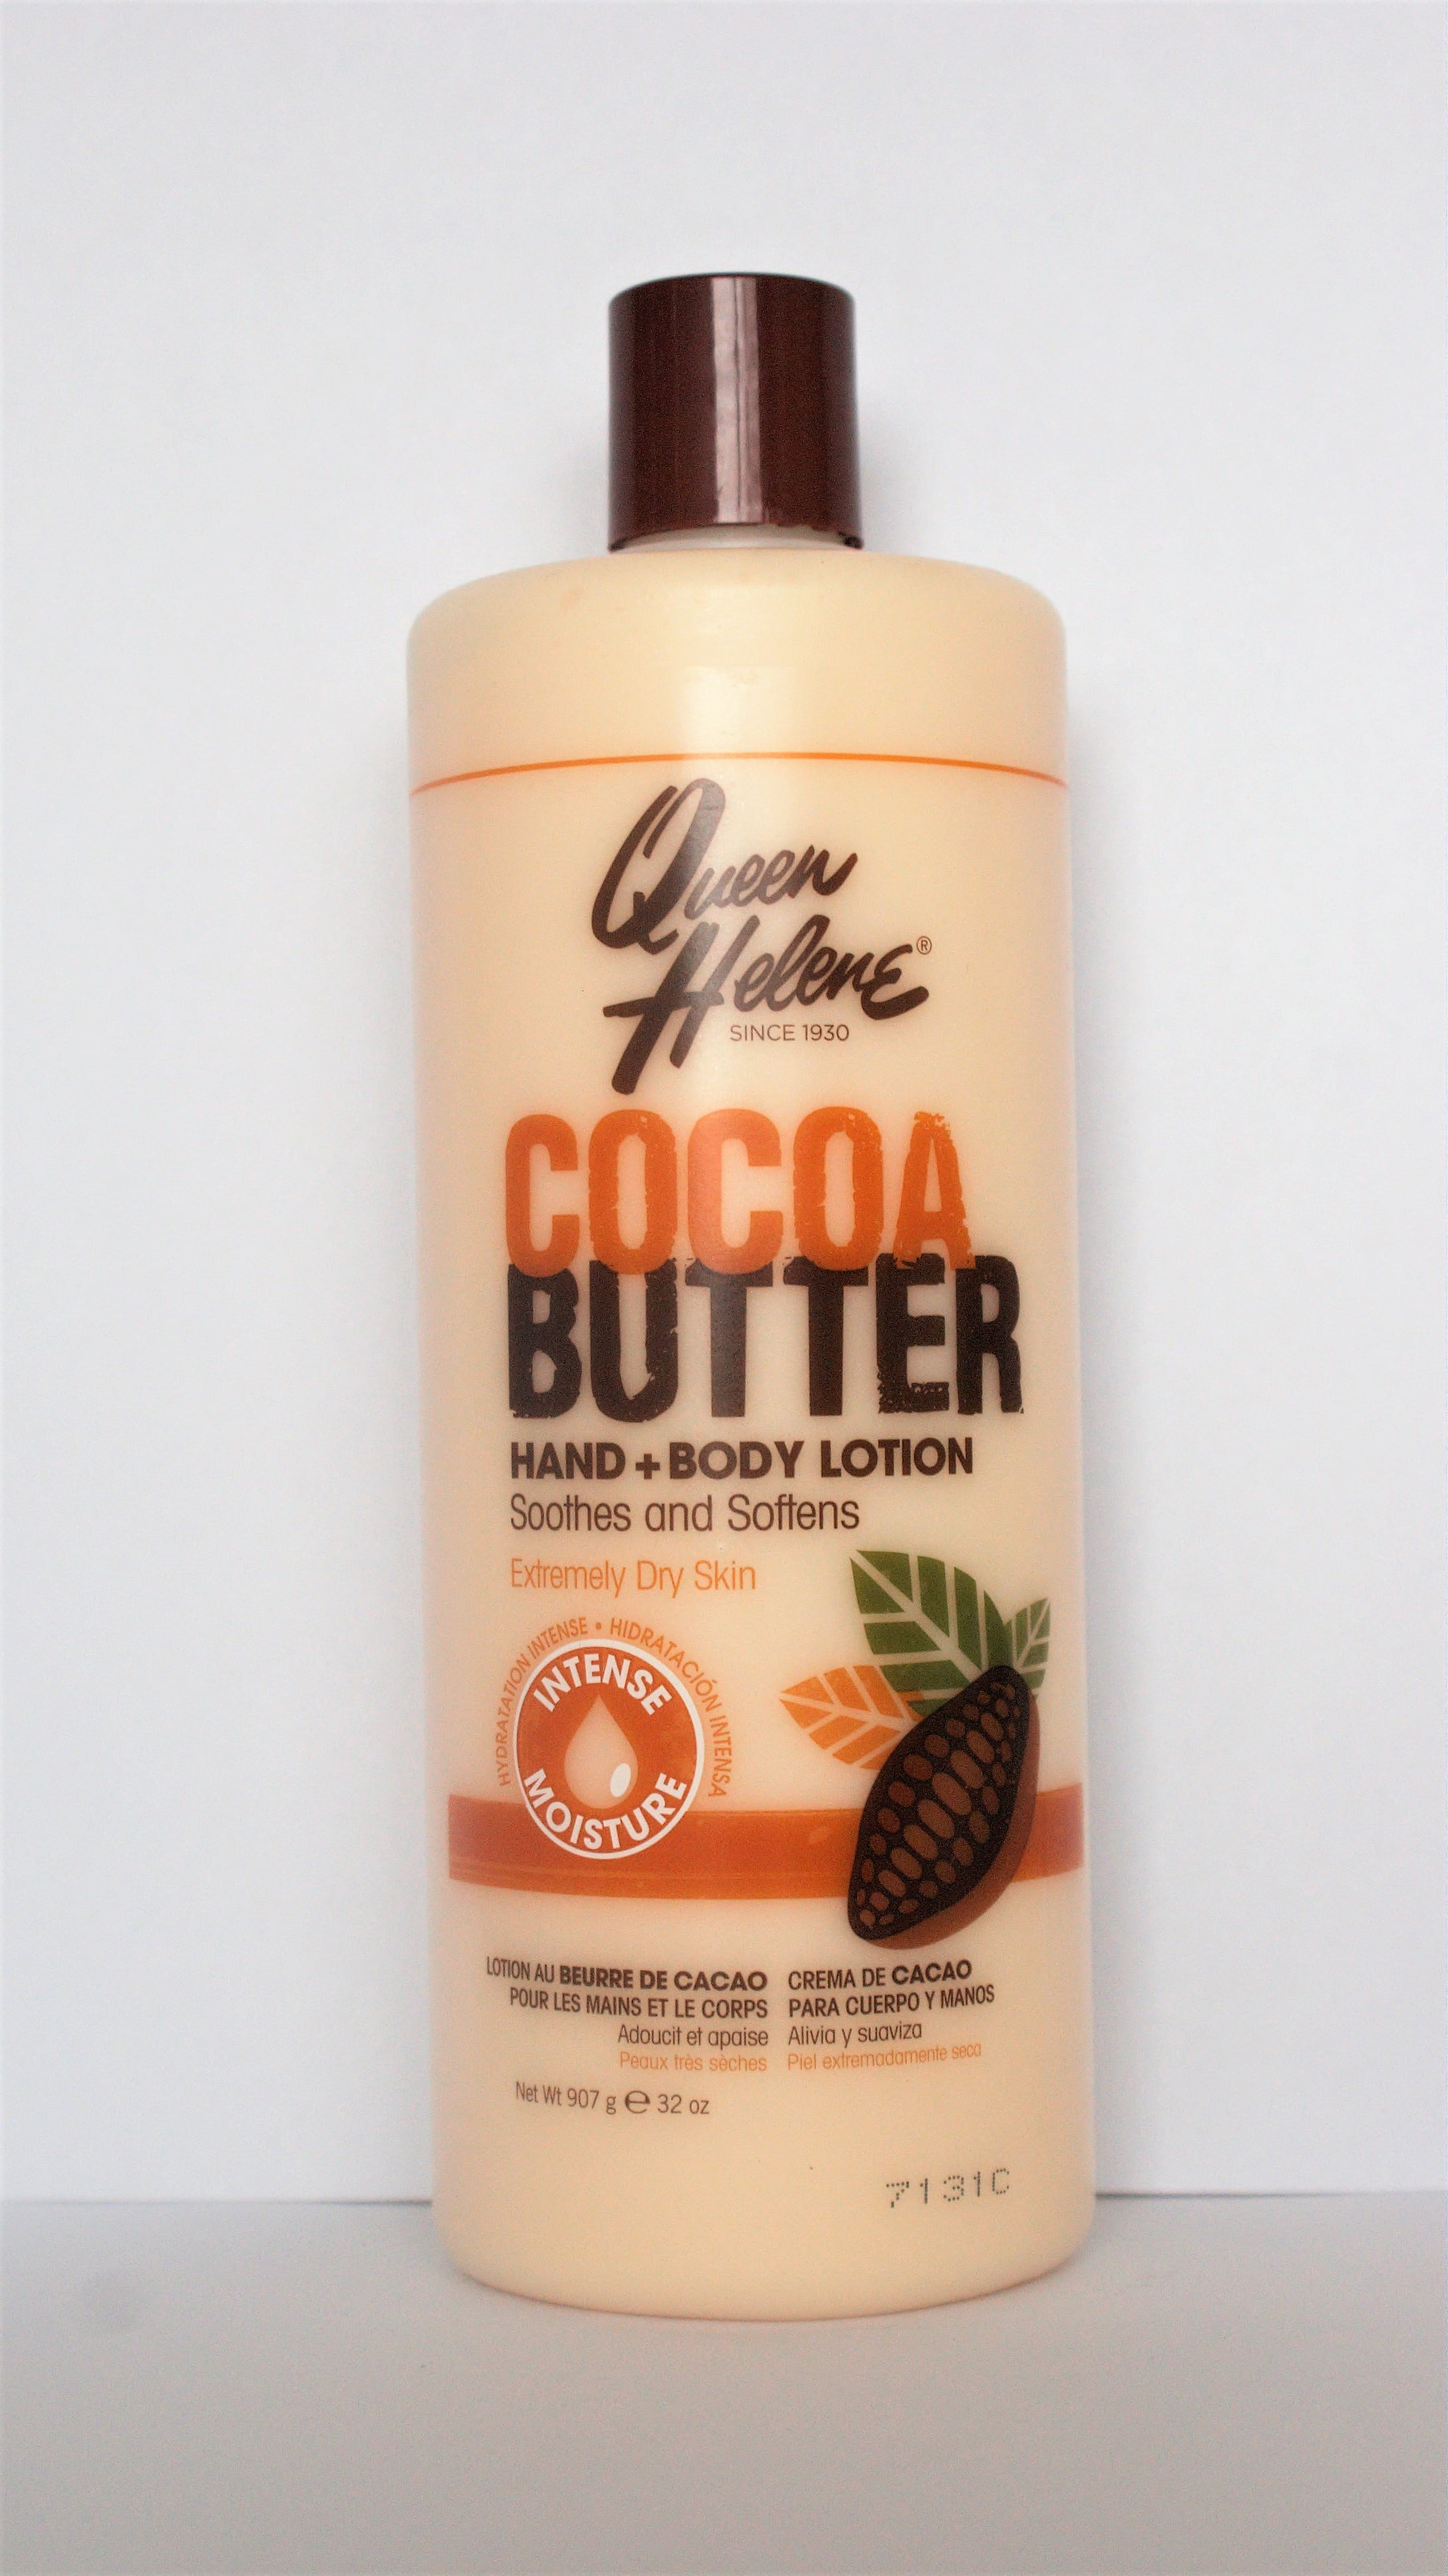 COCOABUTTER LOTION